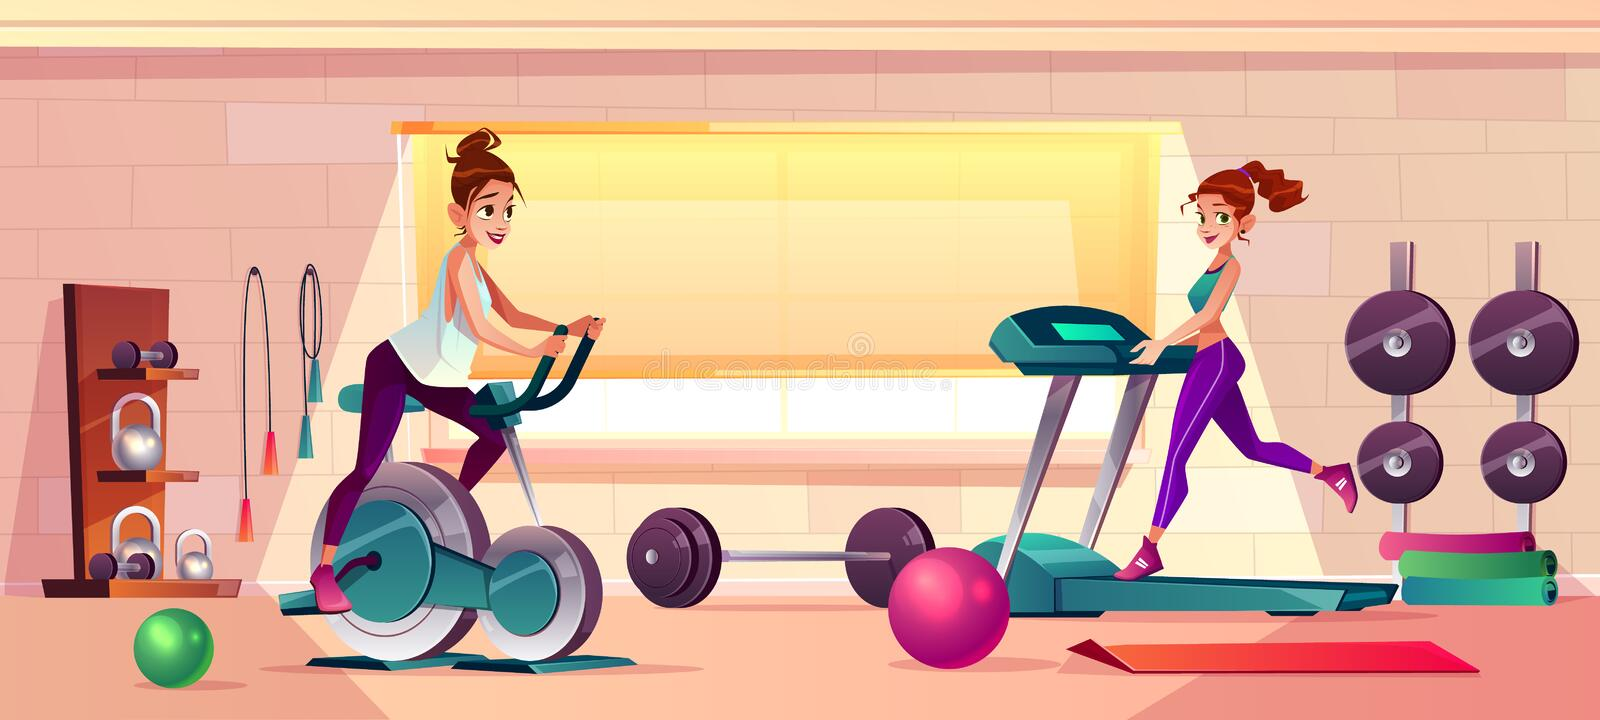 Vector gym background with treadmill, bike training royalty free illustration